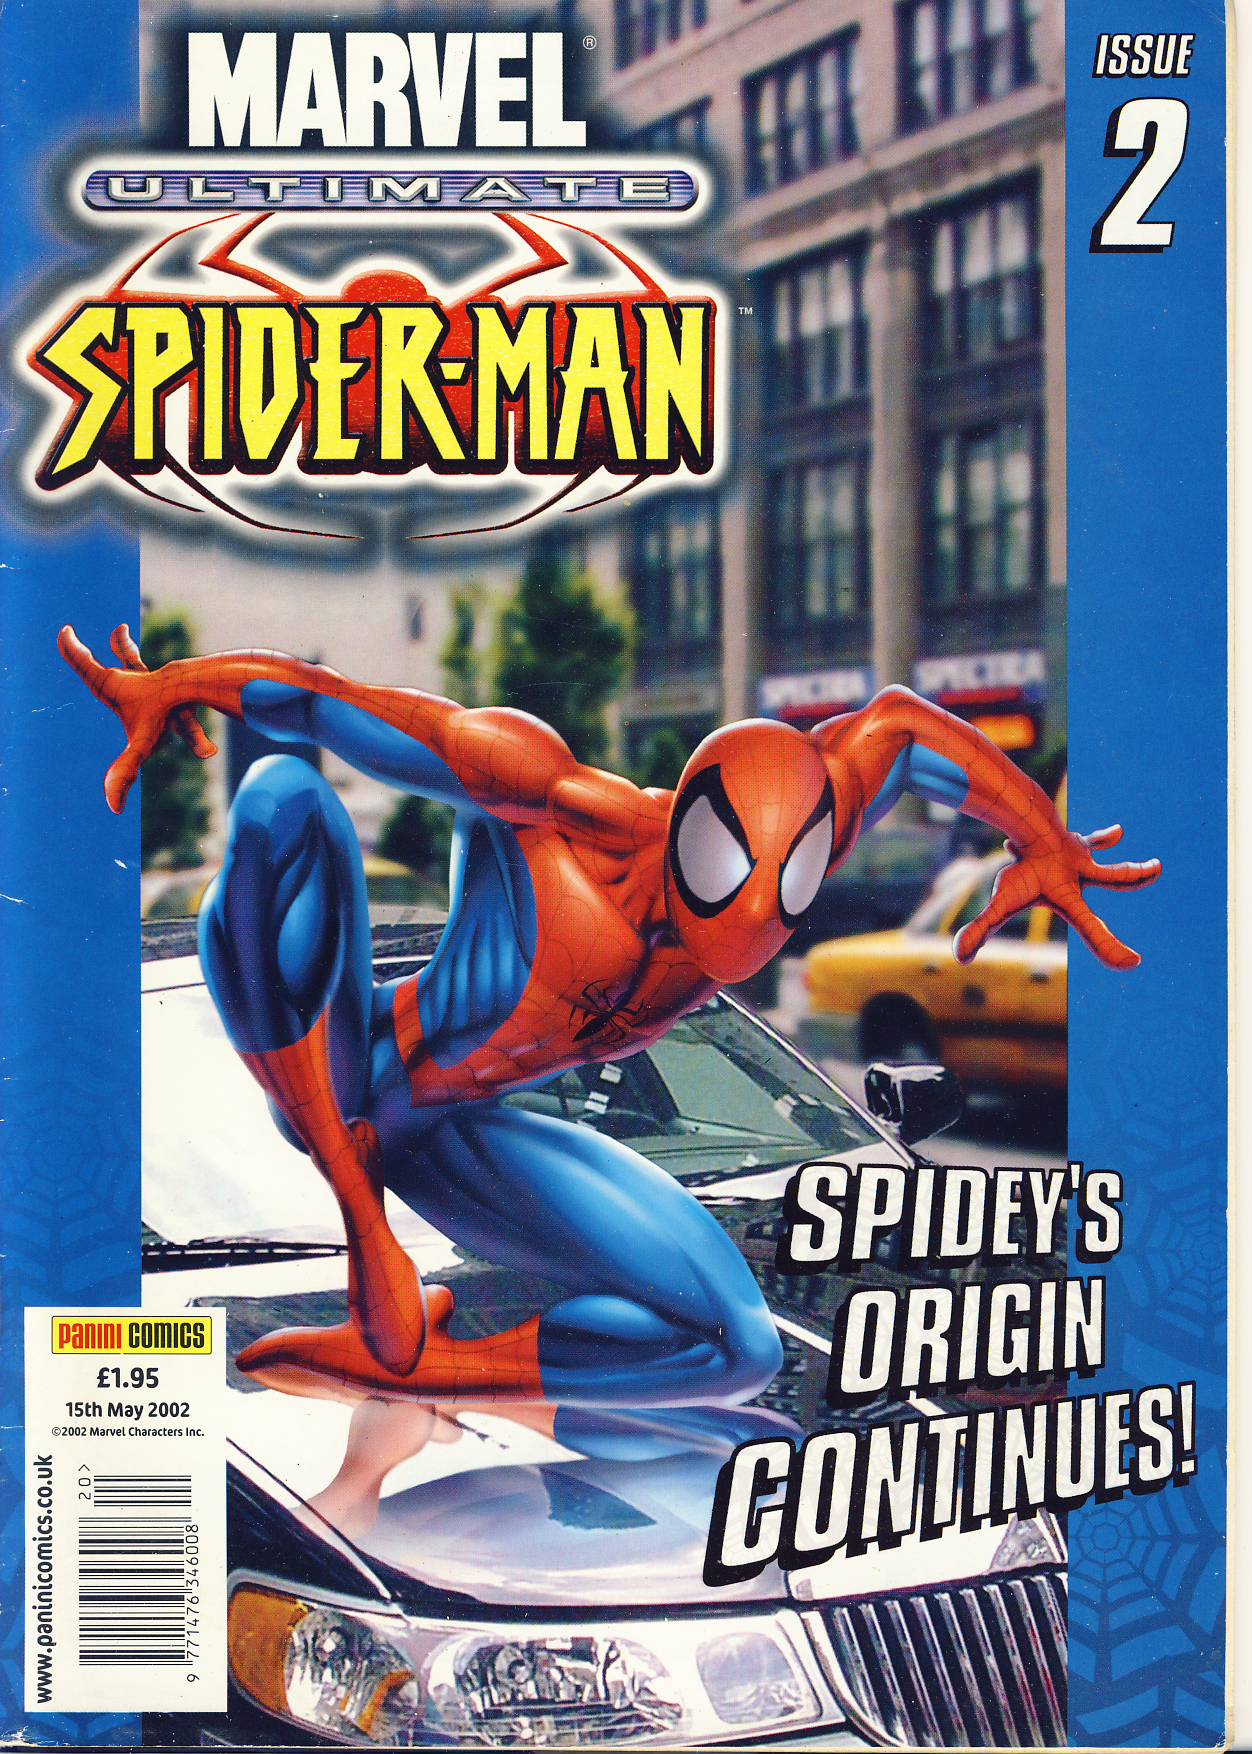 Marvel Ultimate Spider-Man Issue 2 2002 graphic novel comic ref101744 SPIDEY'S ORIGIN CONTINUES! - a pre-owned item in read condition.